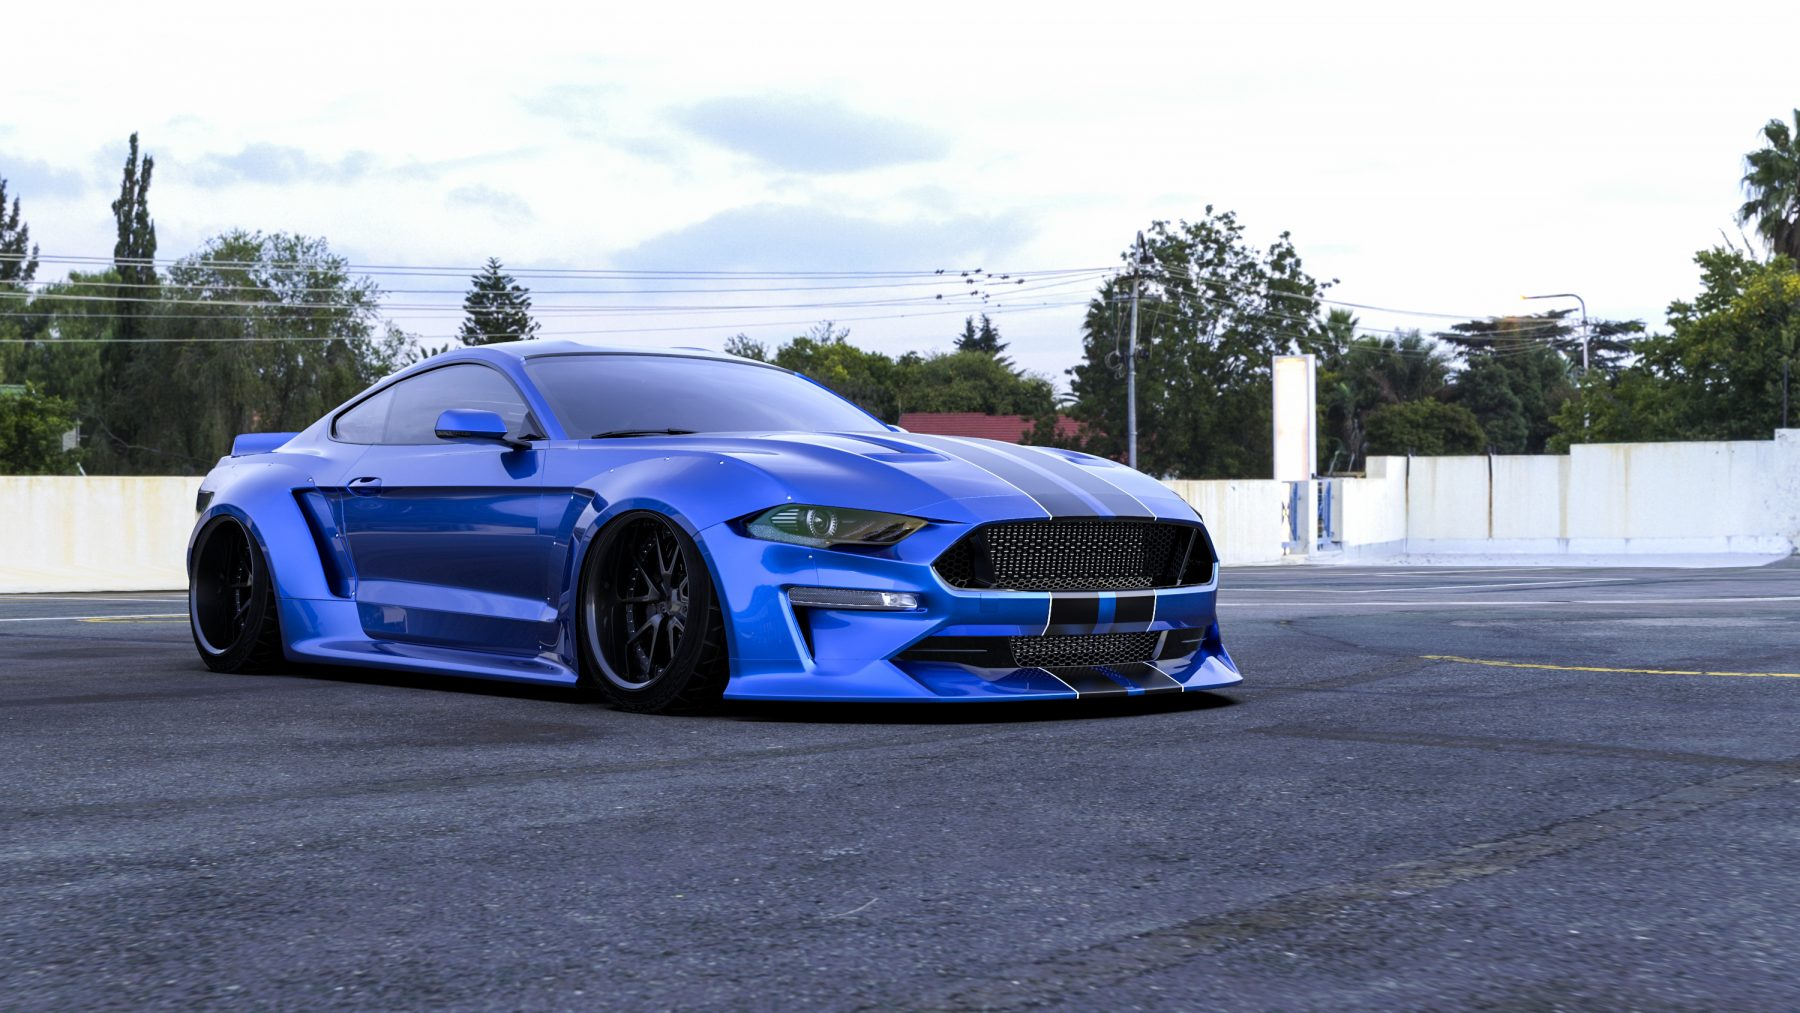 Clinched flares ford mustang 2018 widebody kit